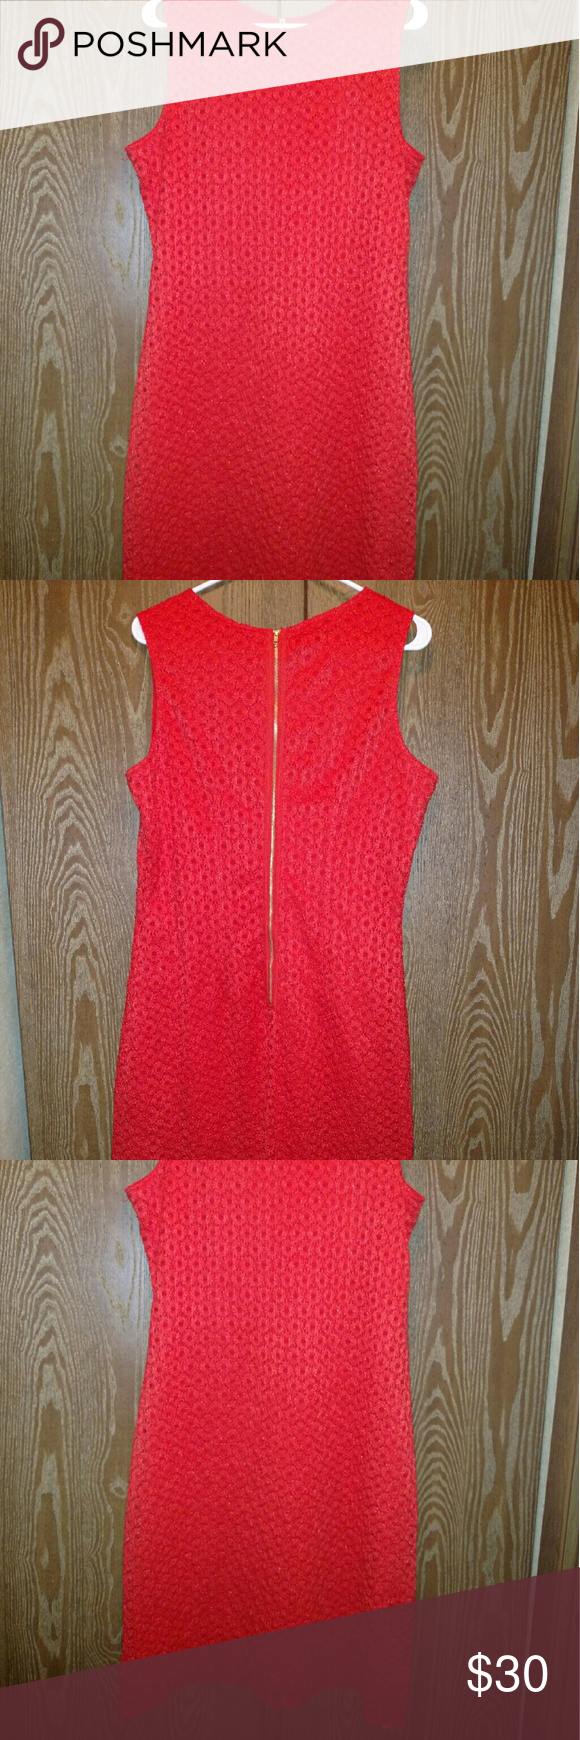 Red Lace-Like Style Dress Only worn once, very comfortable. Feels light to wear for having two layers. The brand name is Sharagano. Sharagano Dresses Midi